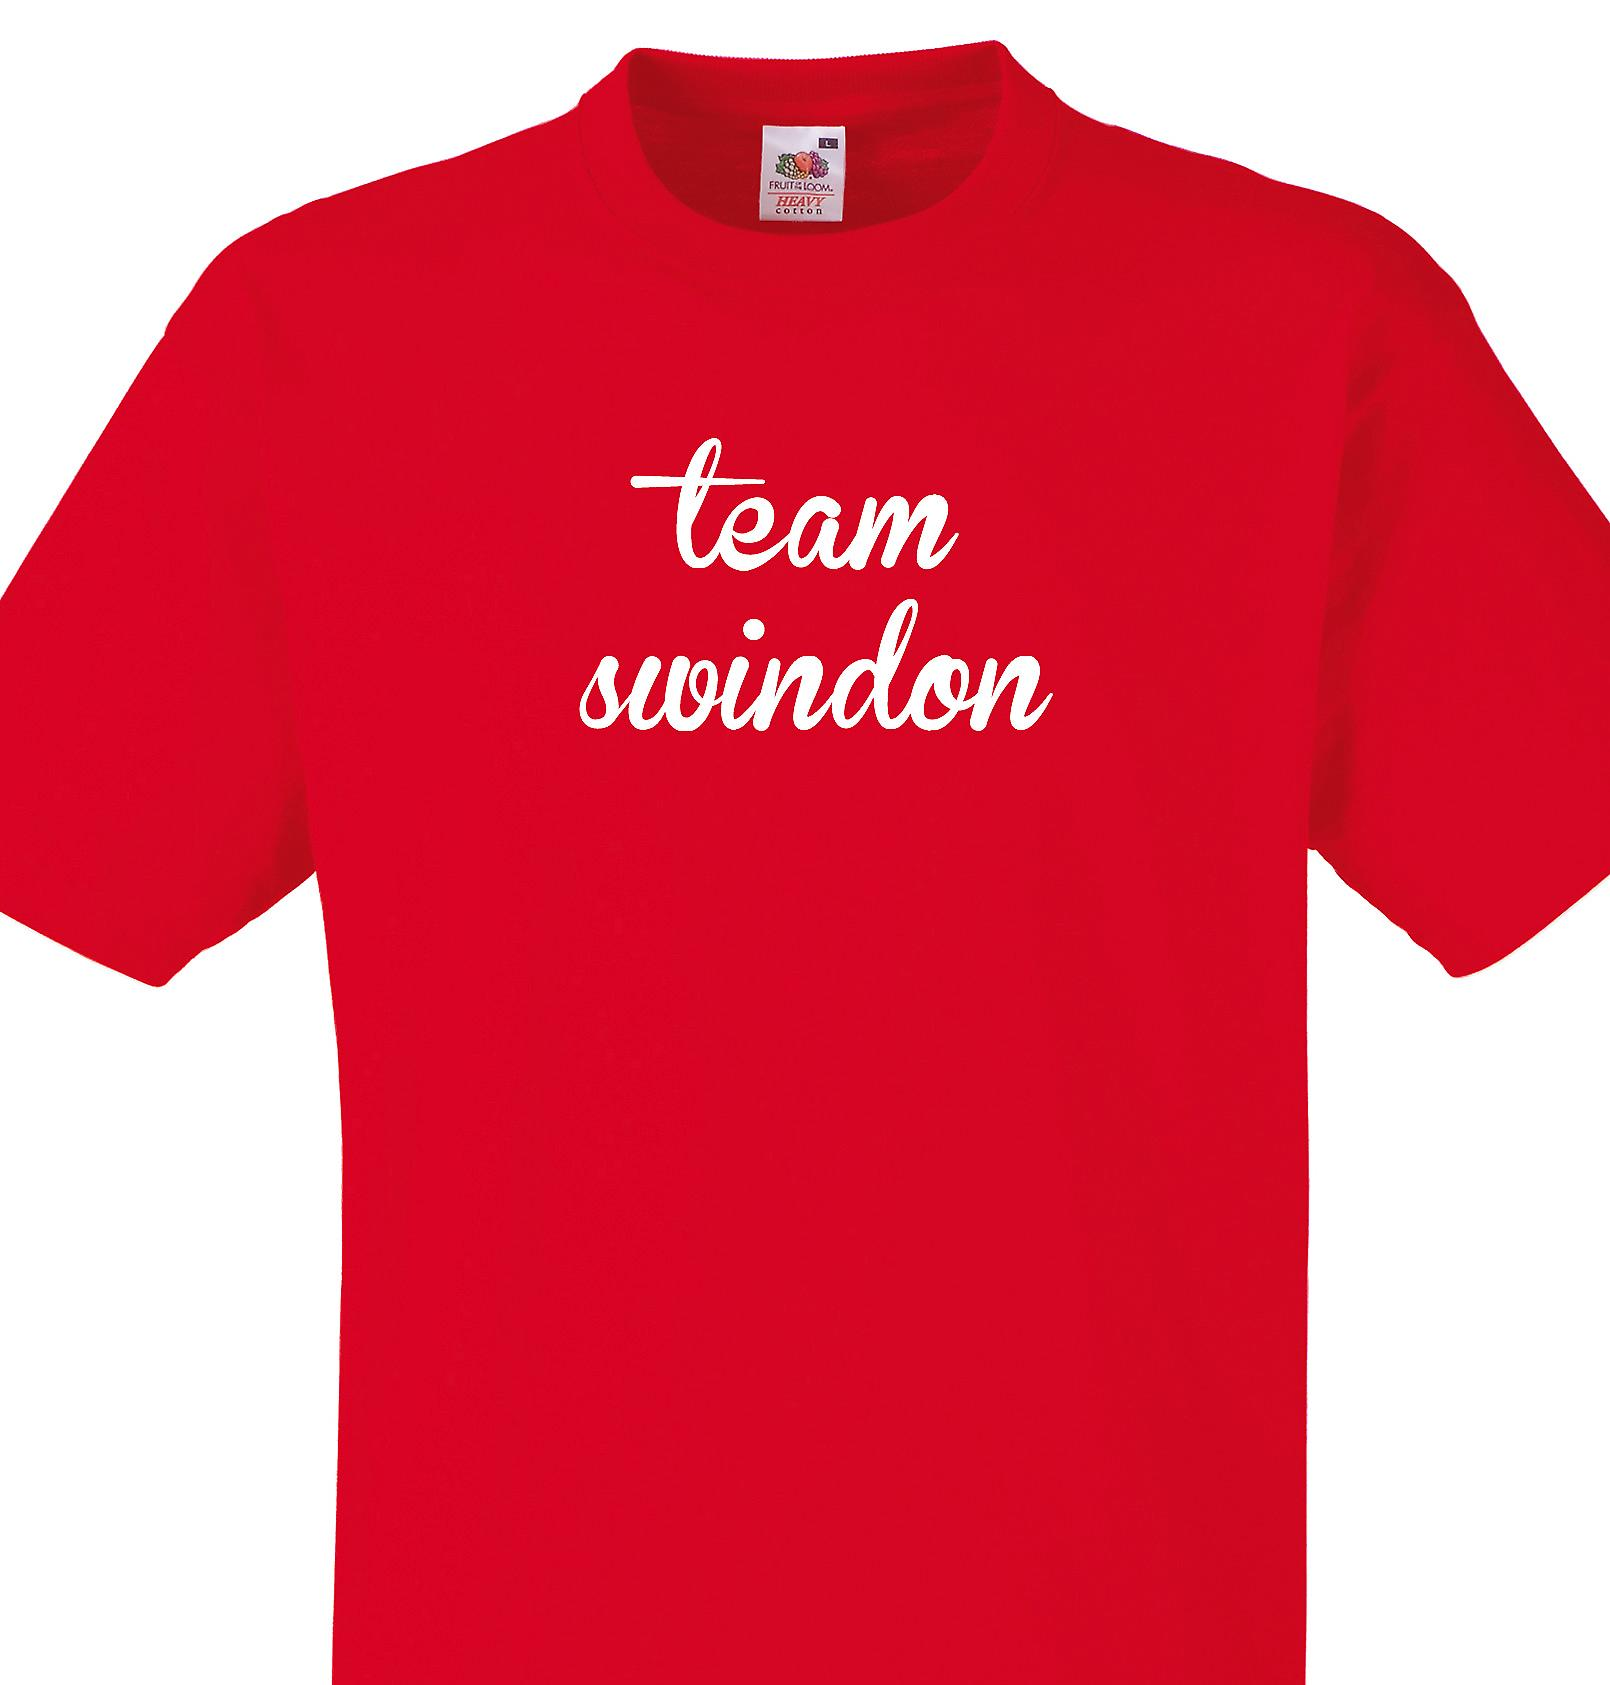 Team Swindon Red T shirt